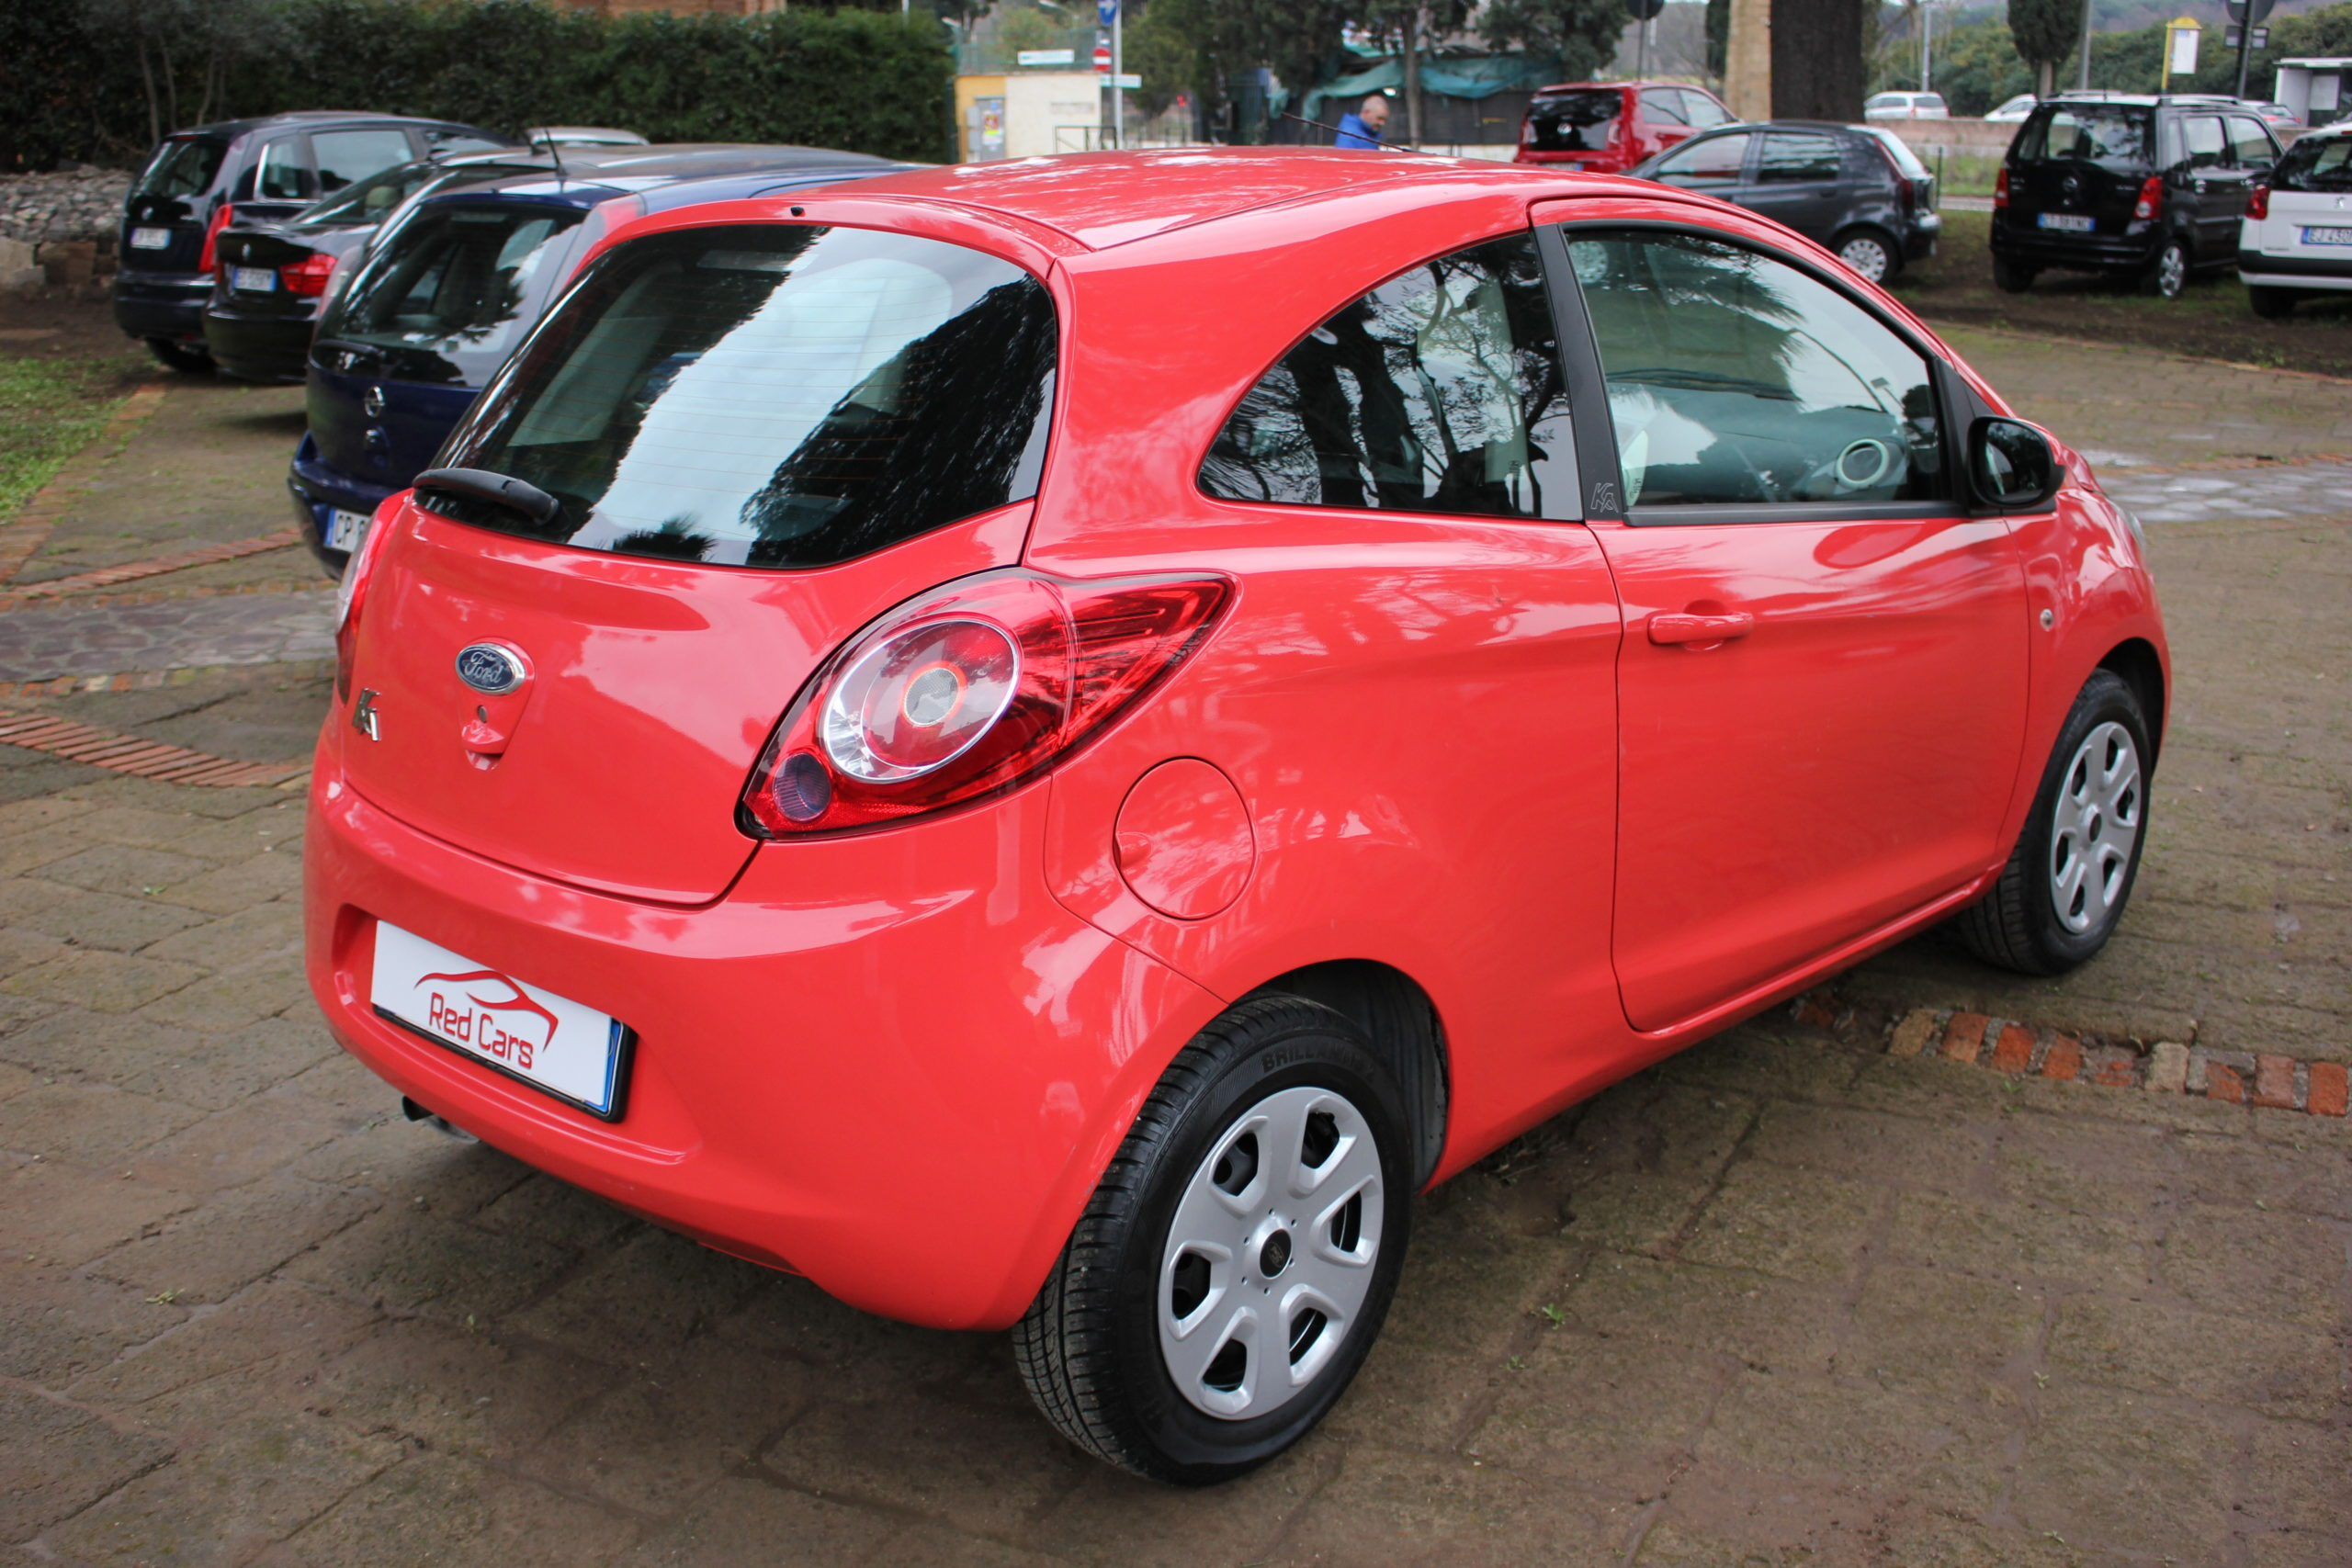 vendita FORD KA 1.2 INDIVIDUAL Red cars via cropani 65 Roma